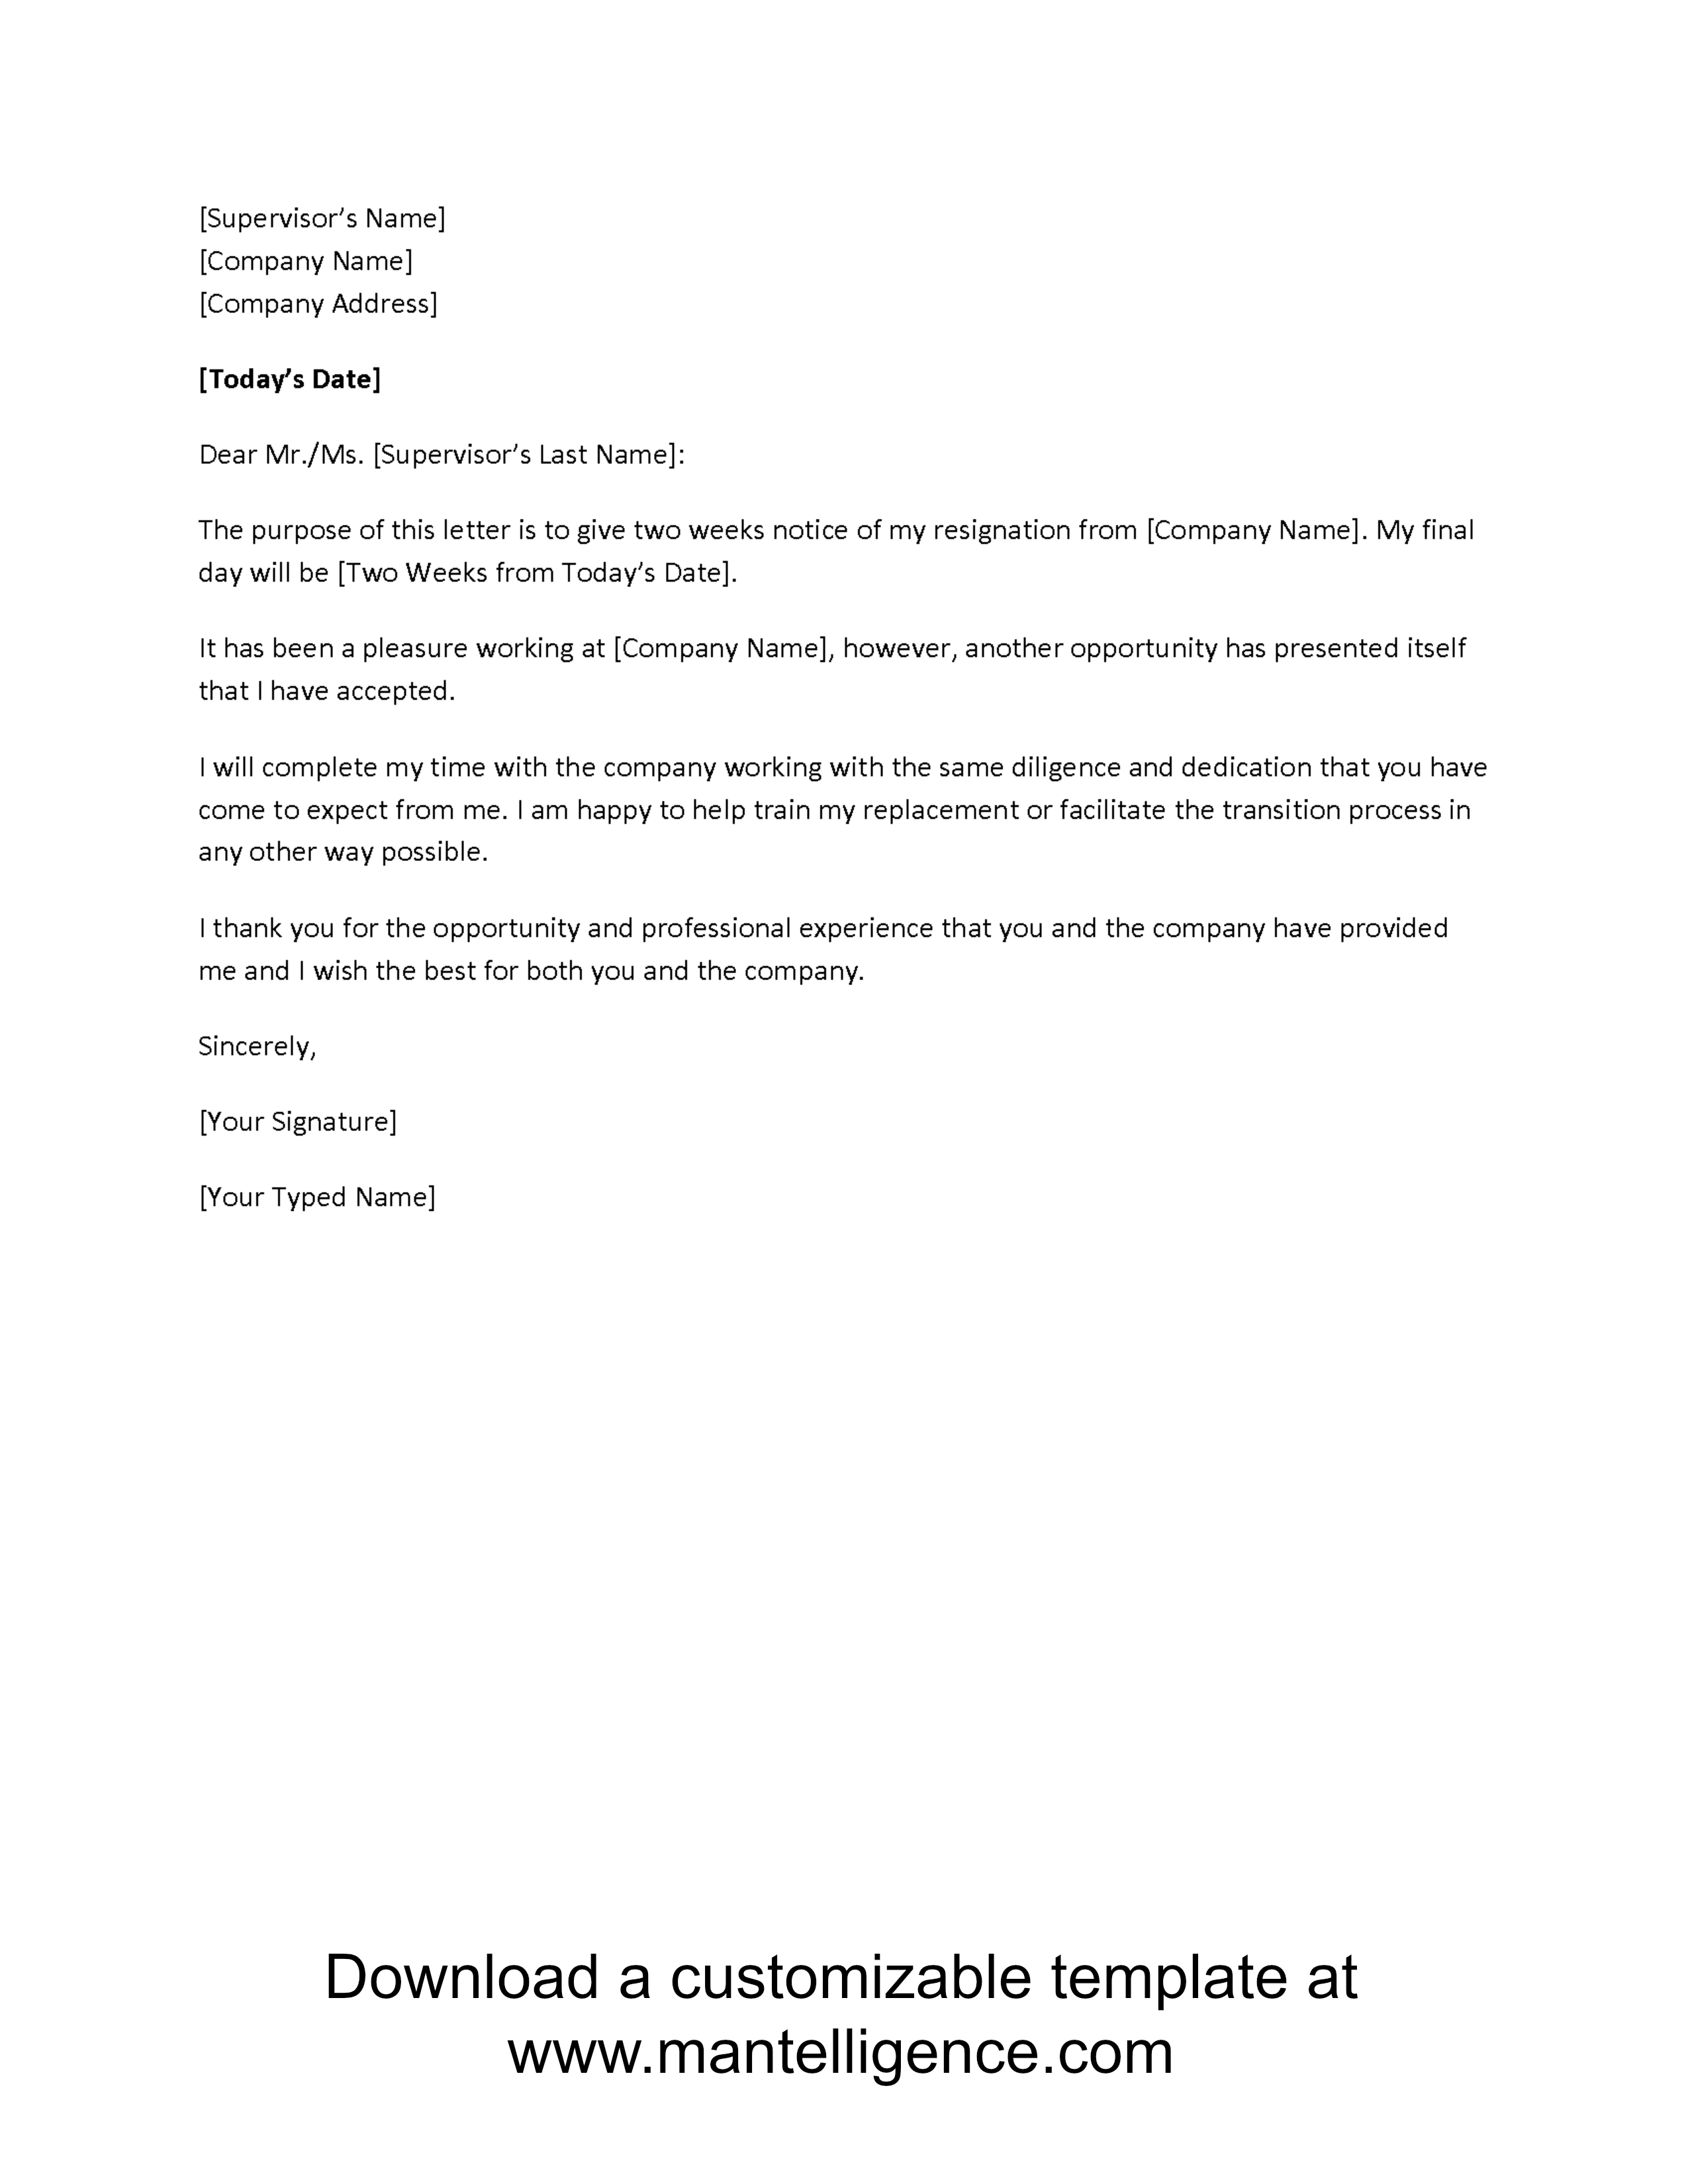 Medical Emergency Letter Template - 3 Highly Professional Two Weeks Notice Letter Templates